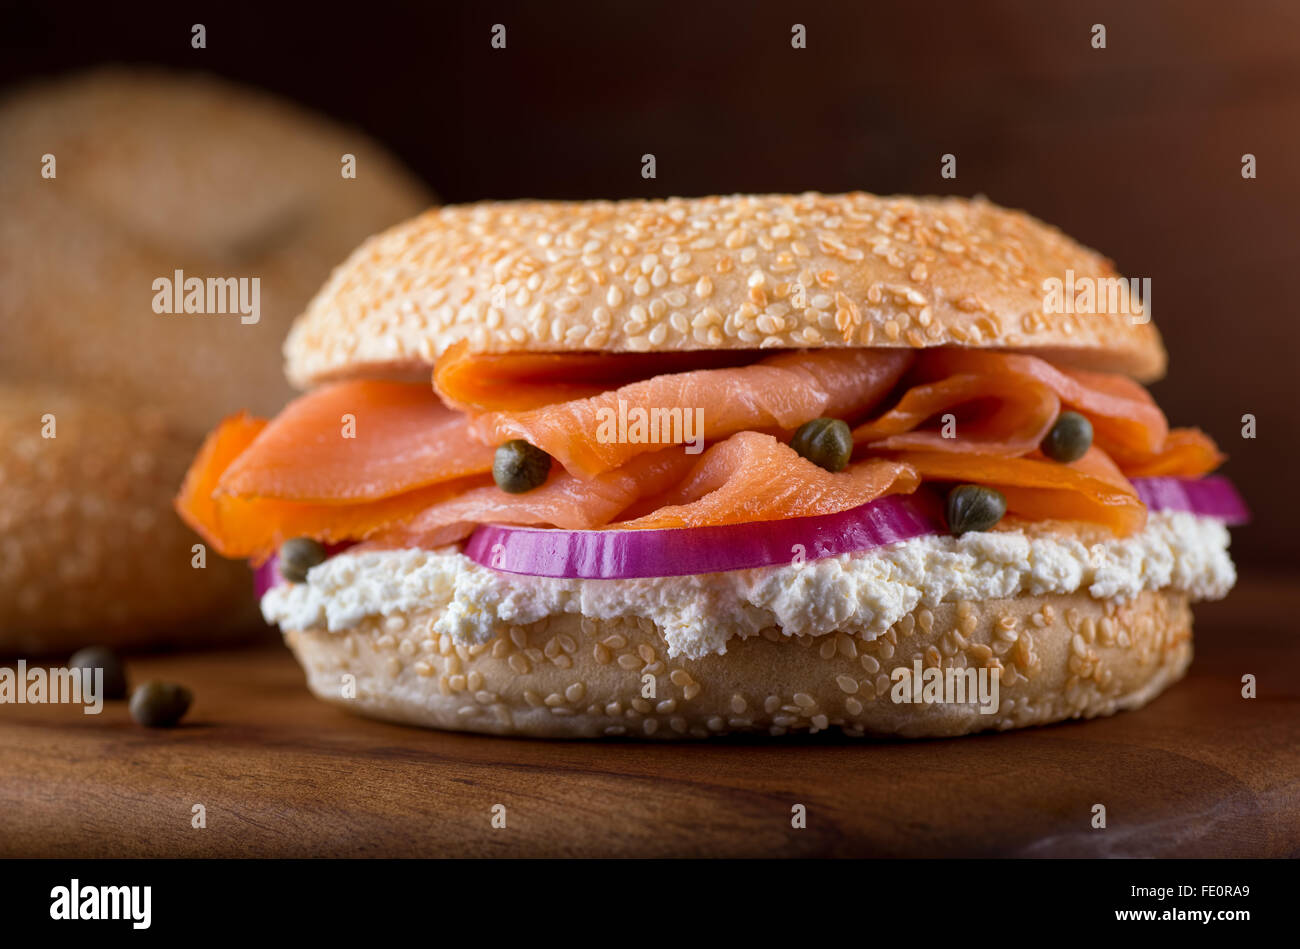 A delicious homemade sesame seed bagel with smoked salmon, whipped cream cheese, red onion, and capers. - Stock Image